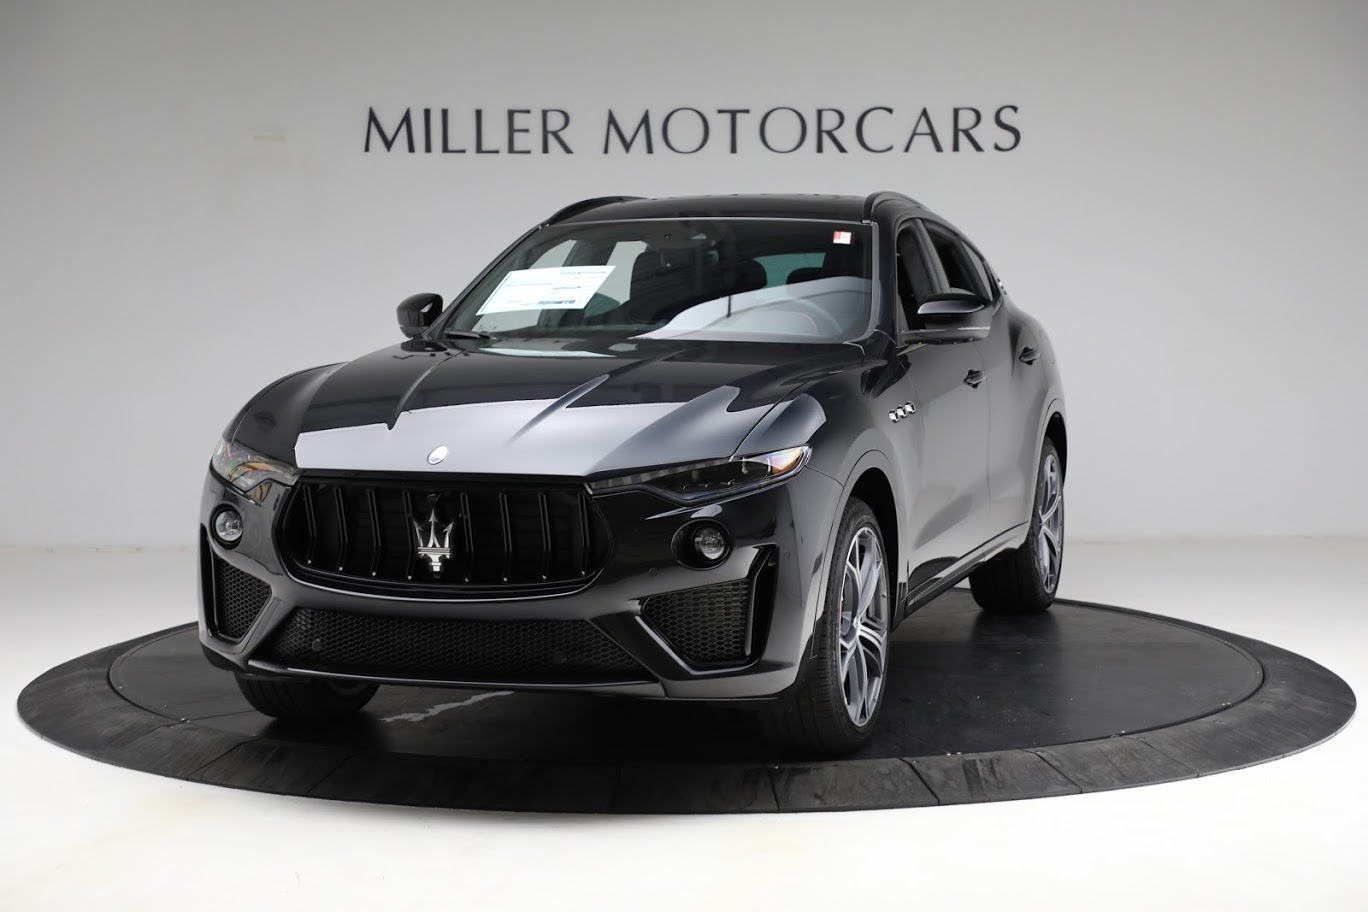 New 2021 Maserati Levante GTS for sale $138,385 at Bentley Greenwich in Greenwich CT 06830 1